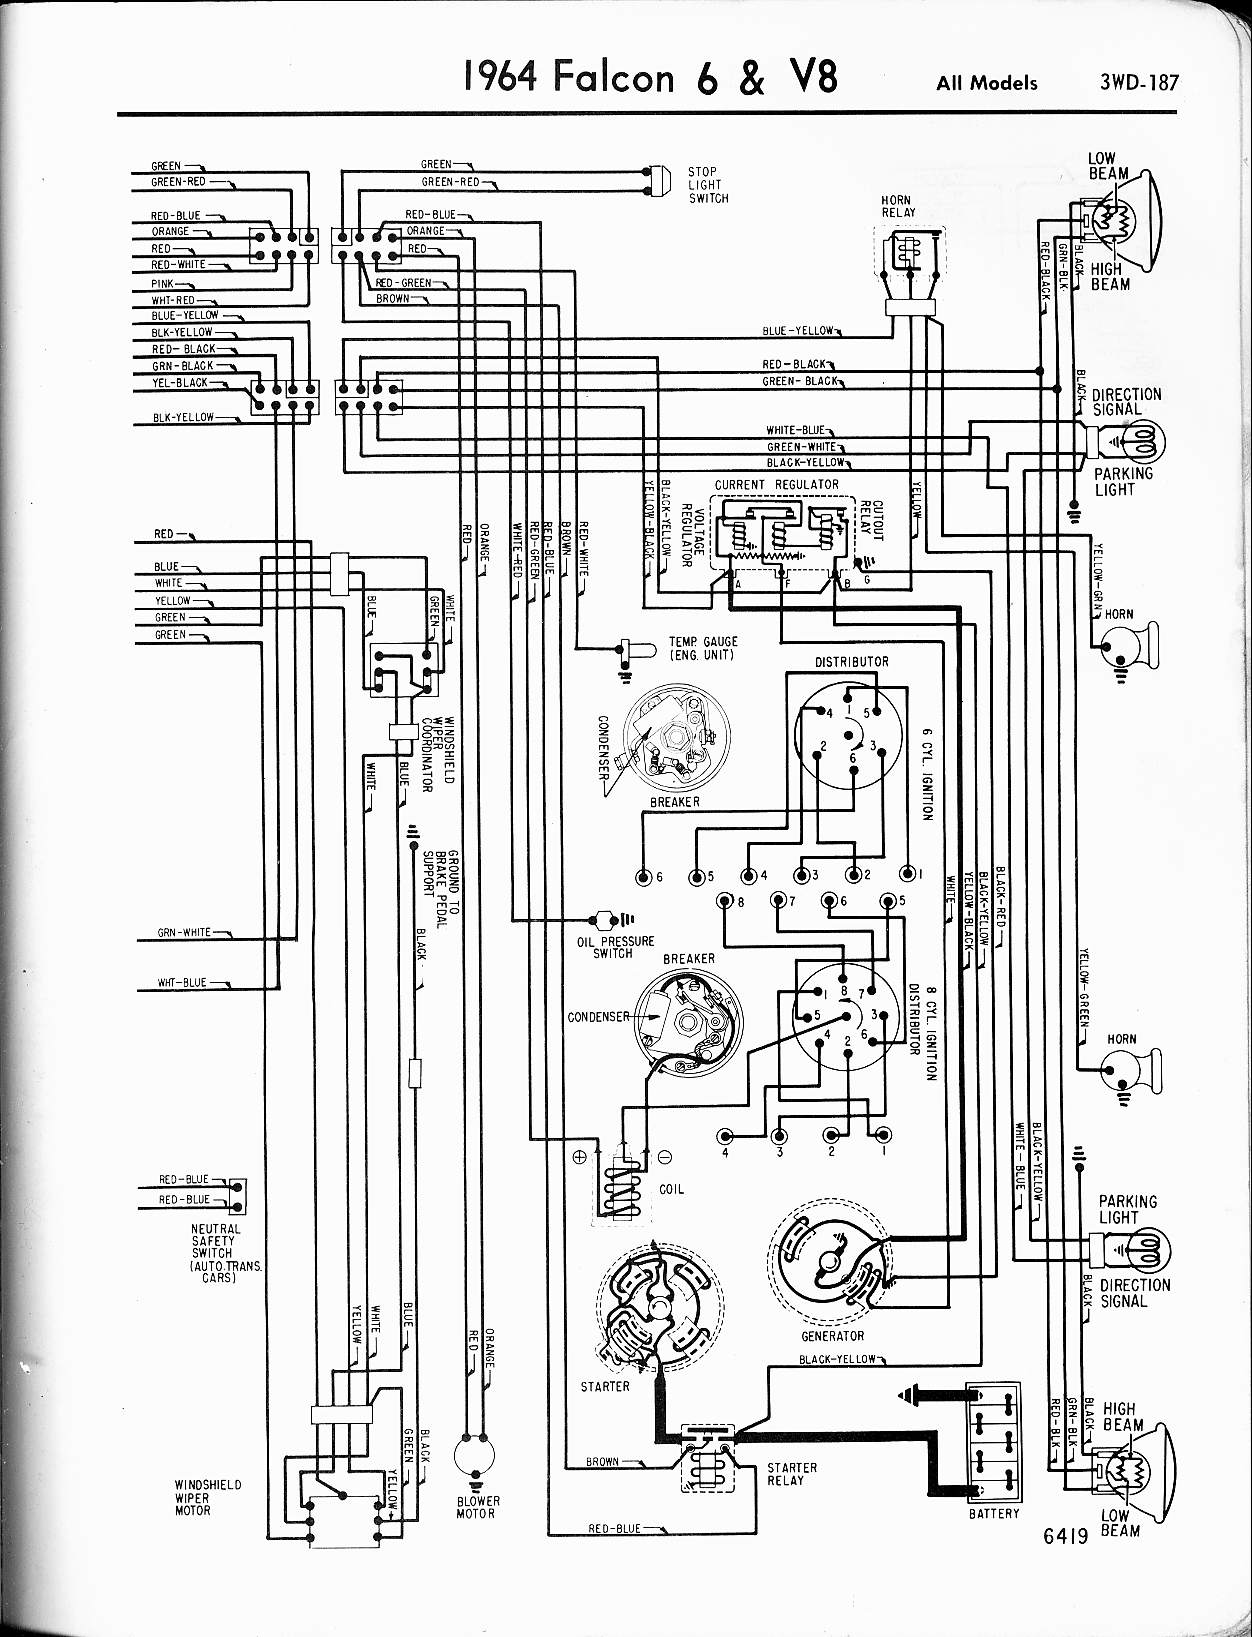 1964 falcon wiring help needed ford muscle forums ford 1964 falcon for both i6 and v8 page 1 of 2